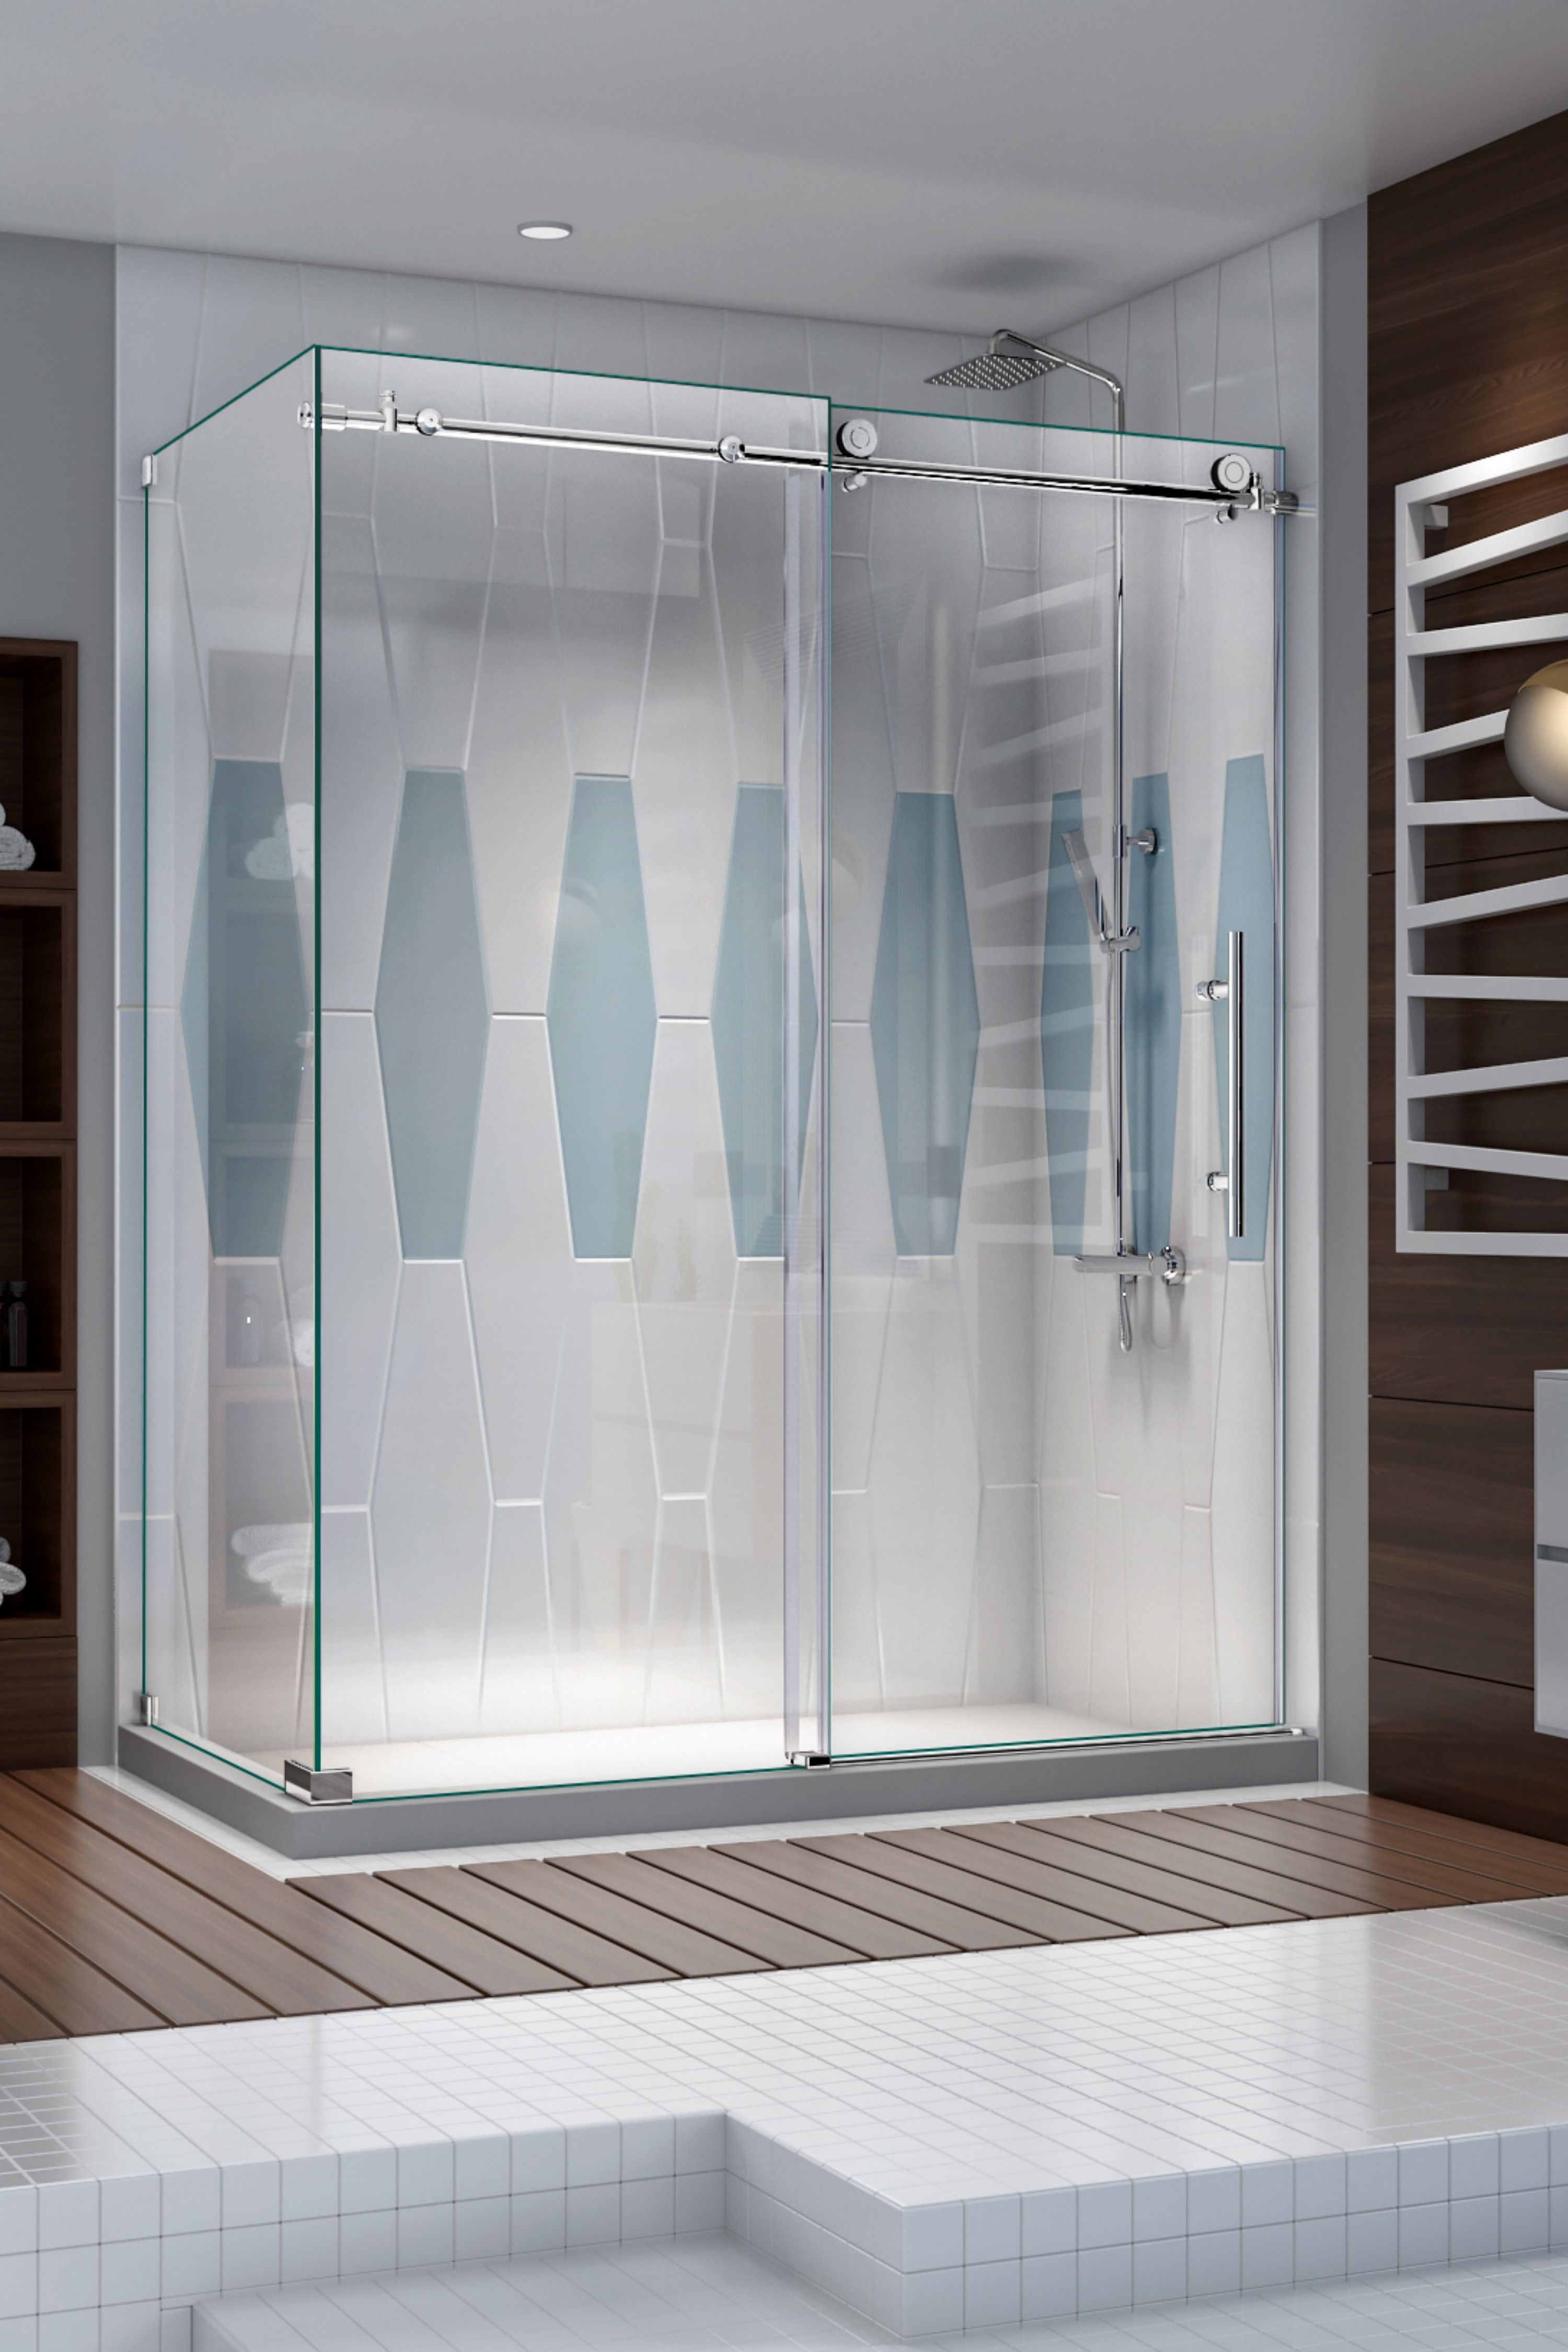 Dreamline S Custom Glass Group Is The Perfect Choice To Elevate